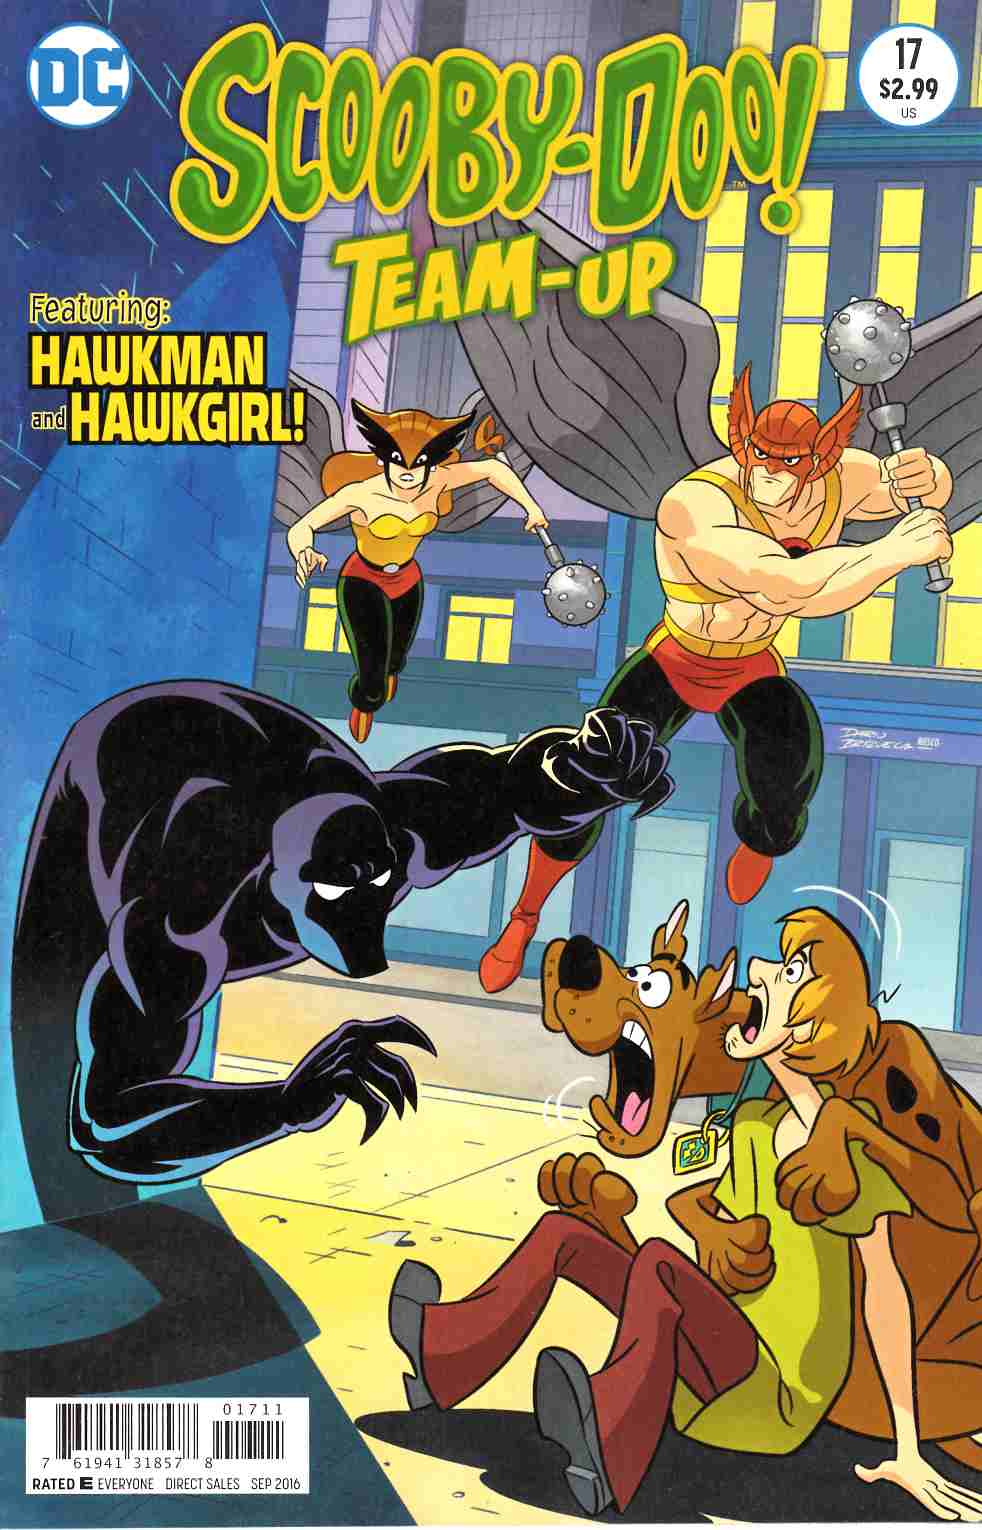 Scooby Doo Team Up #17 [DC Comic] THUMBNAIL